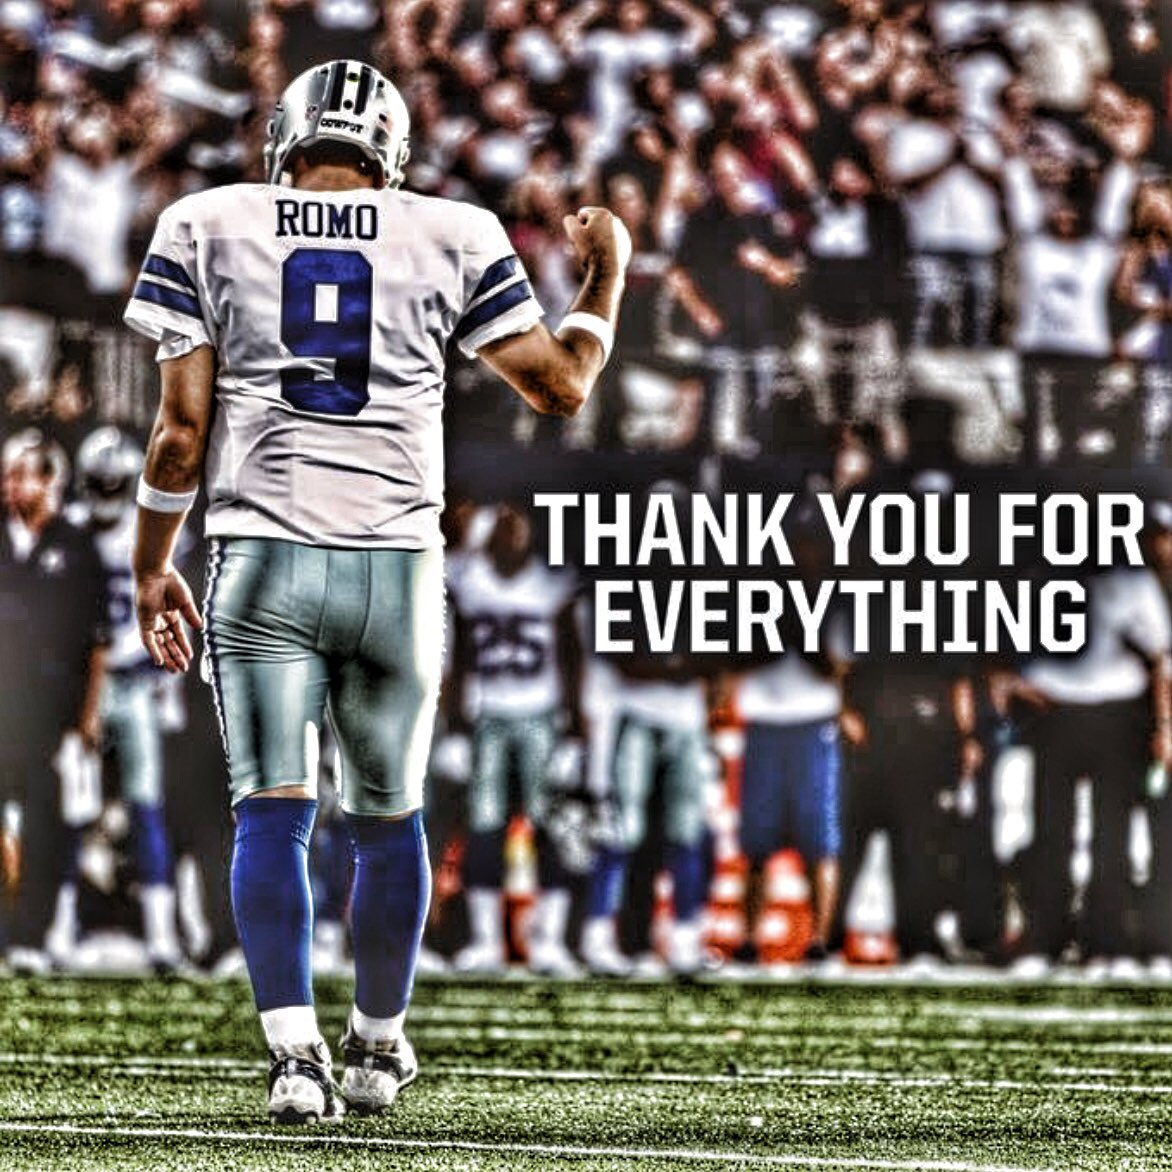 Tony Romo plans to retire from football, go into broadcasting https://t.co/pDgrztcESM